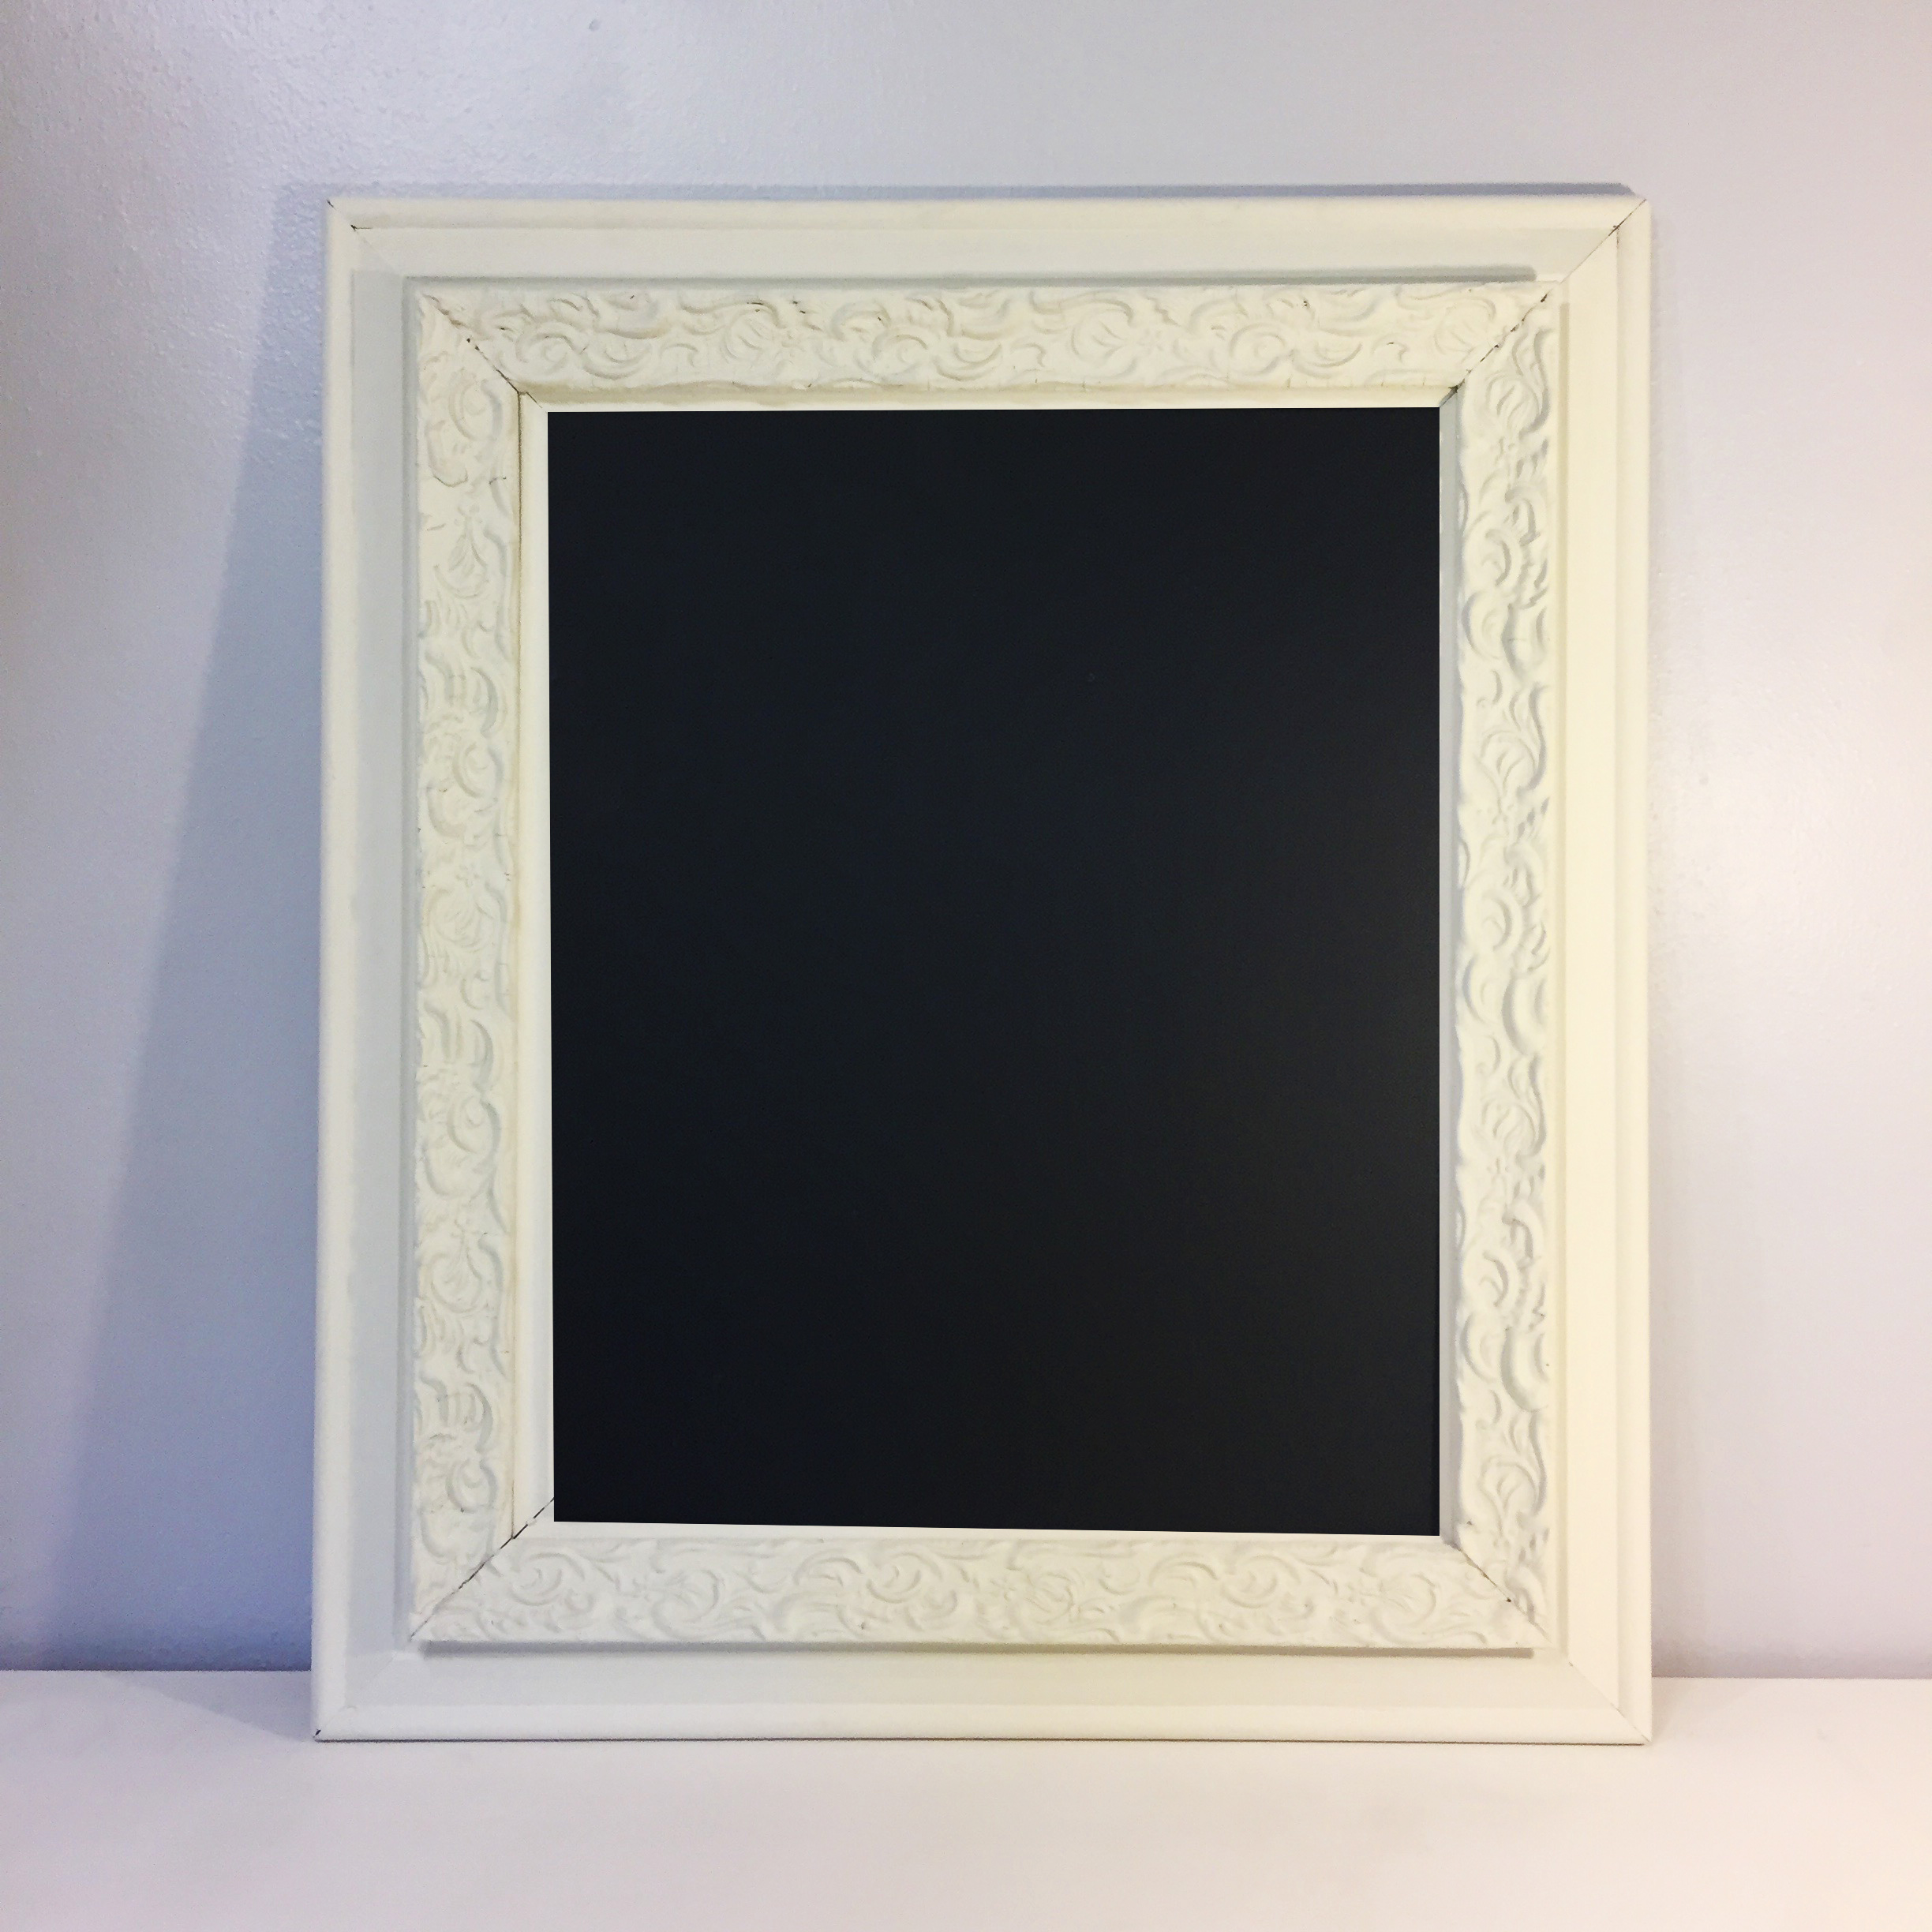 Antique White Chalkboard Frame